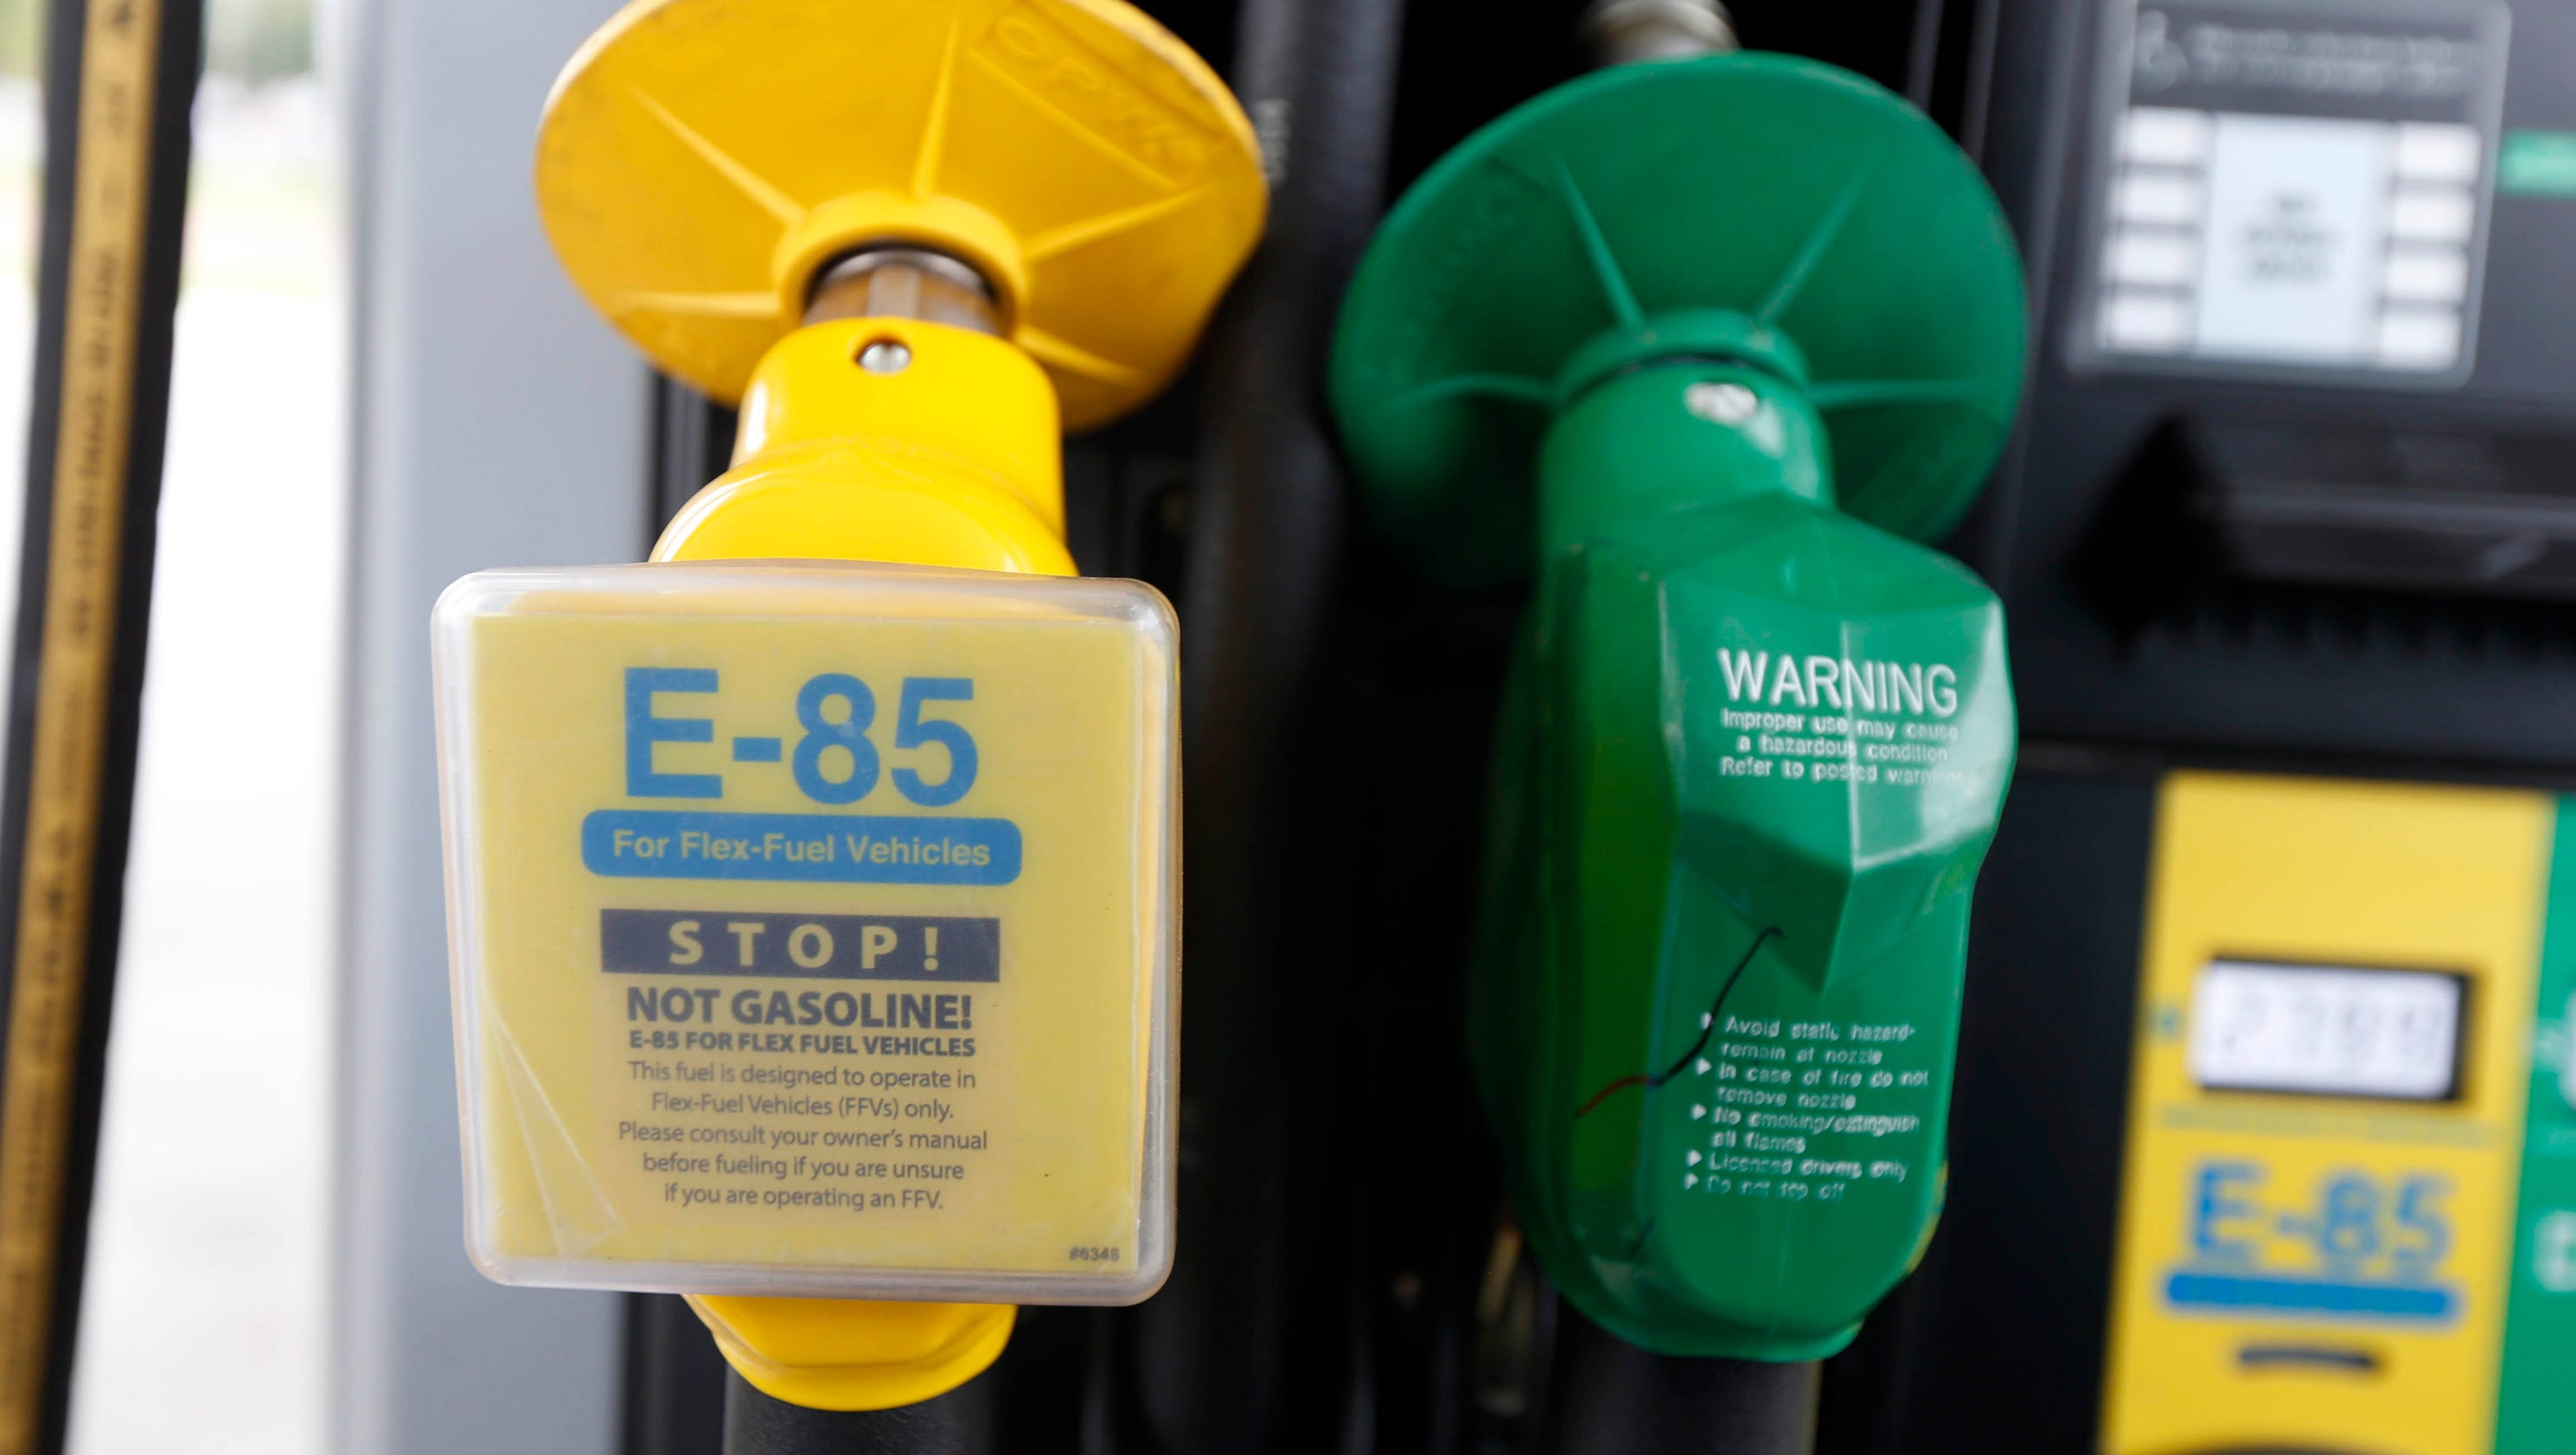 epa approves lower ethanol increase in u s fuel supply than 2007 law. Black Bedroom Furniture Sets. Home Design Ideas